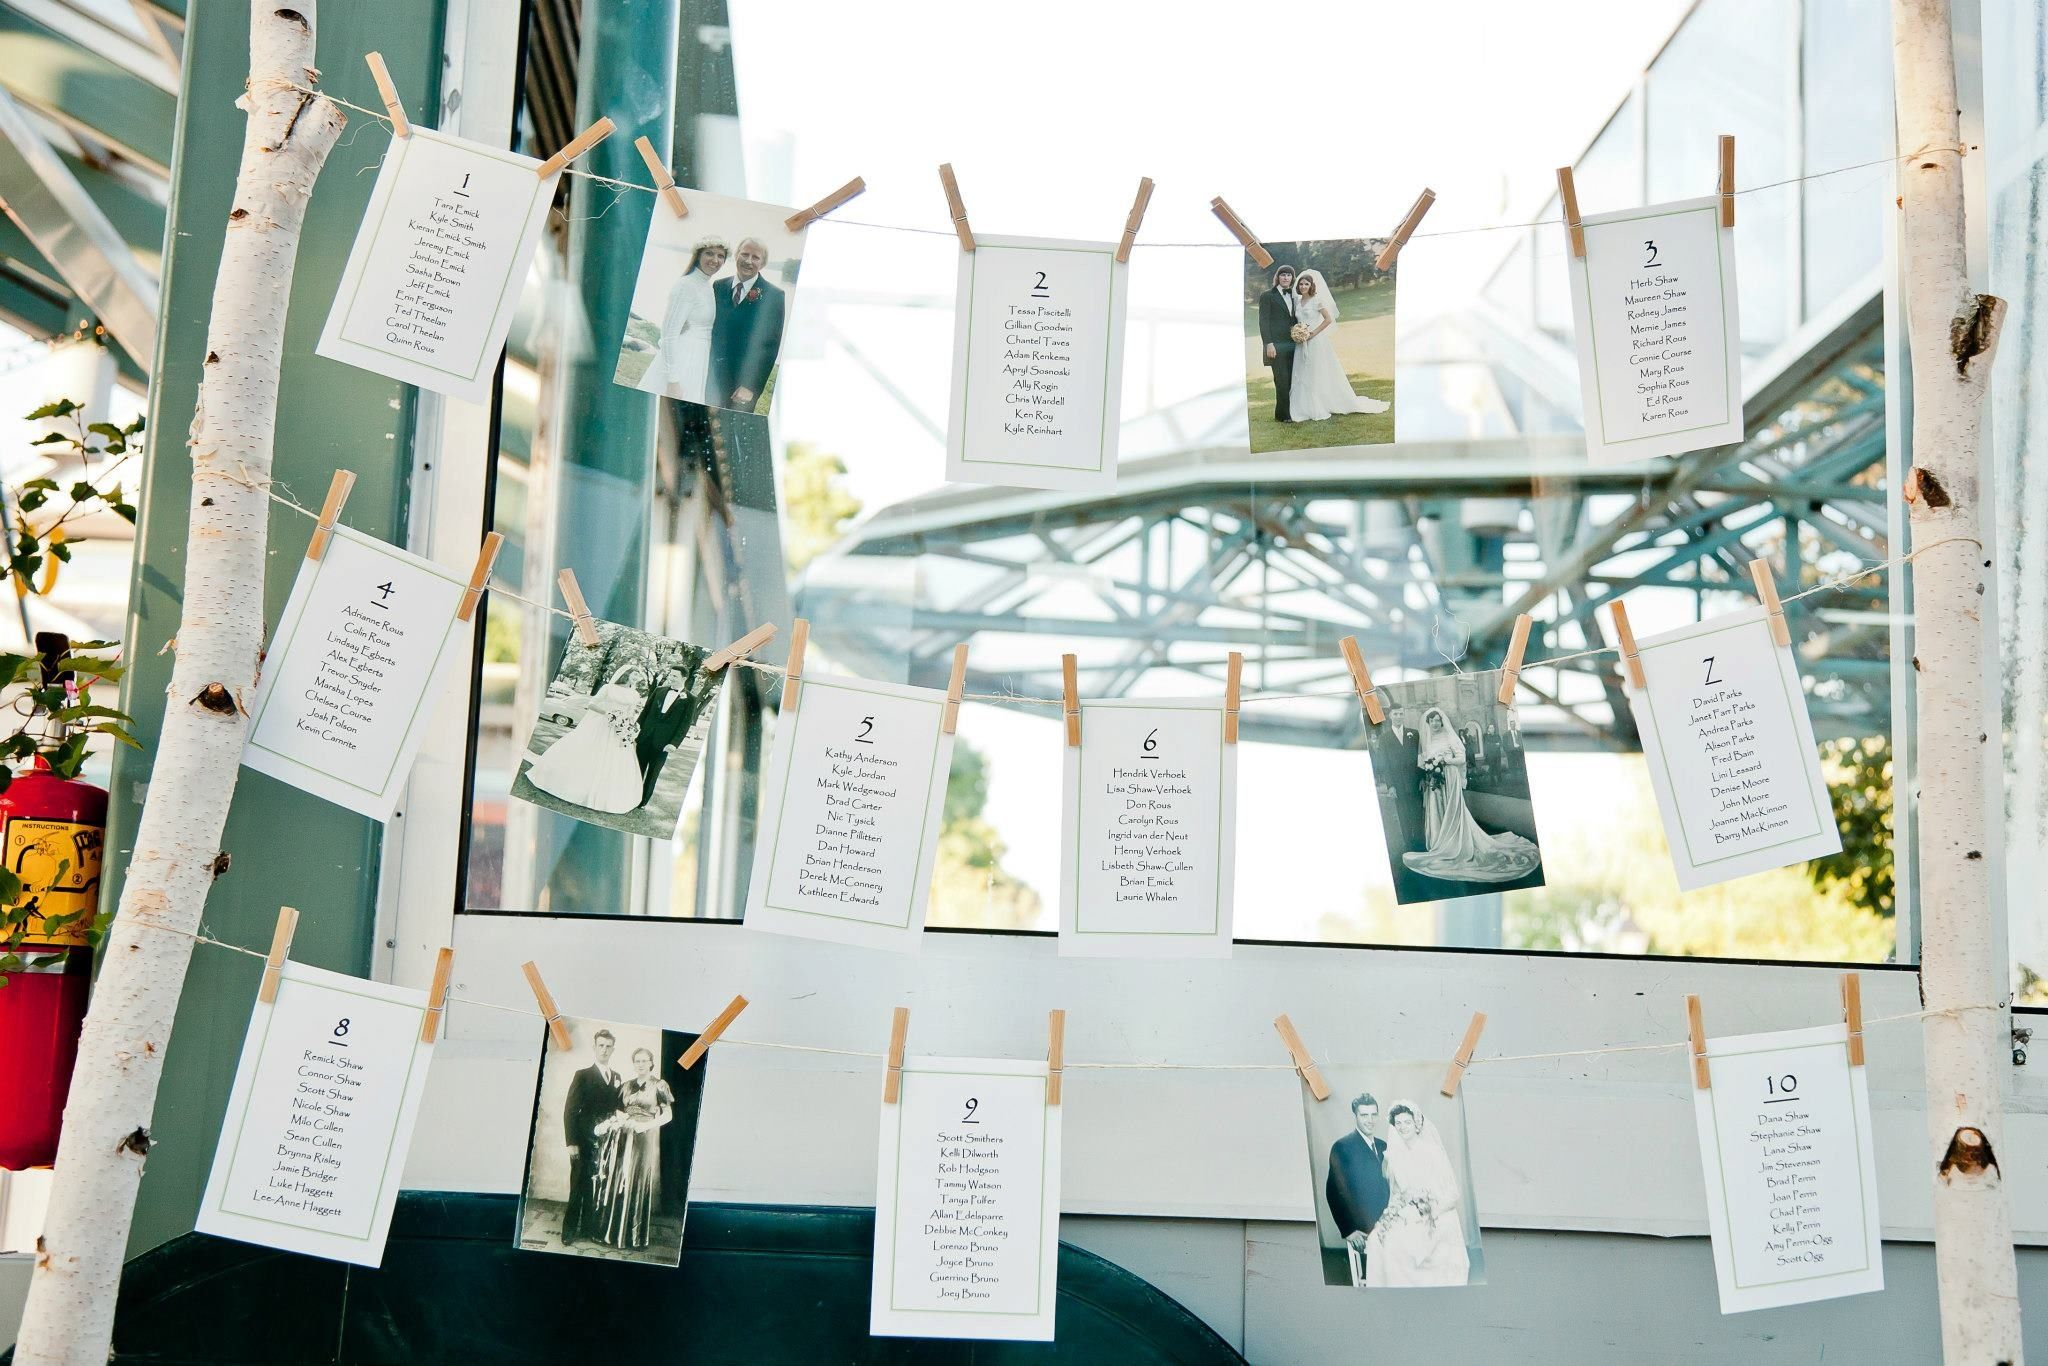 Table seating chart. Used birch trees in metal buckets. Used clothes pins to twine lines to attach family wedding photos and table seating lists.